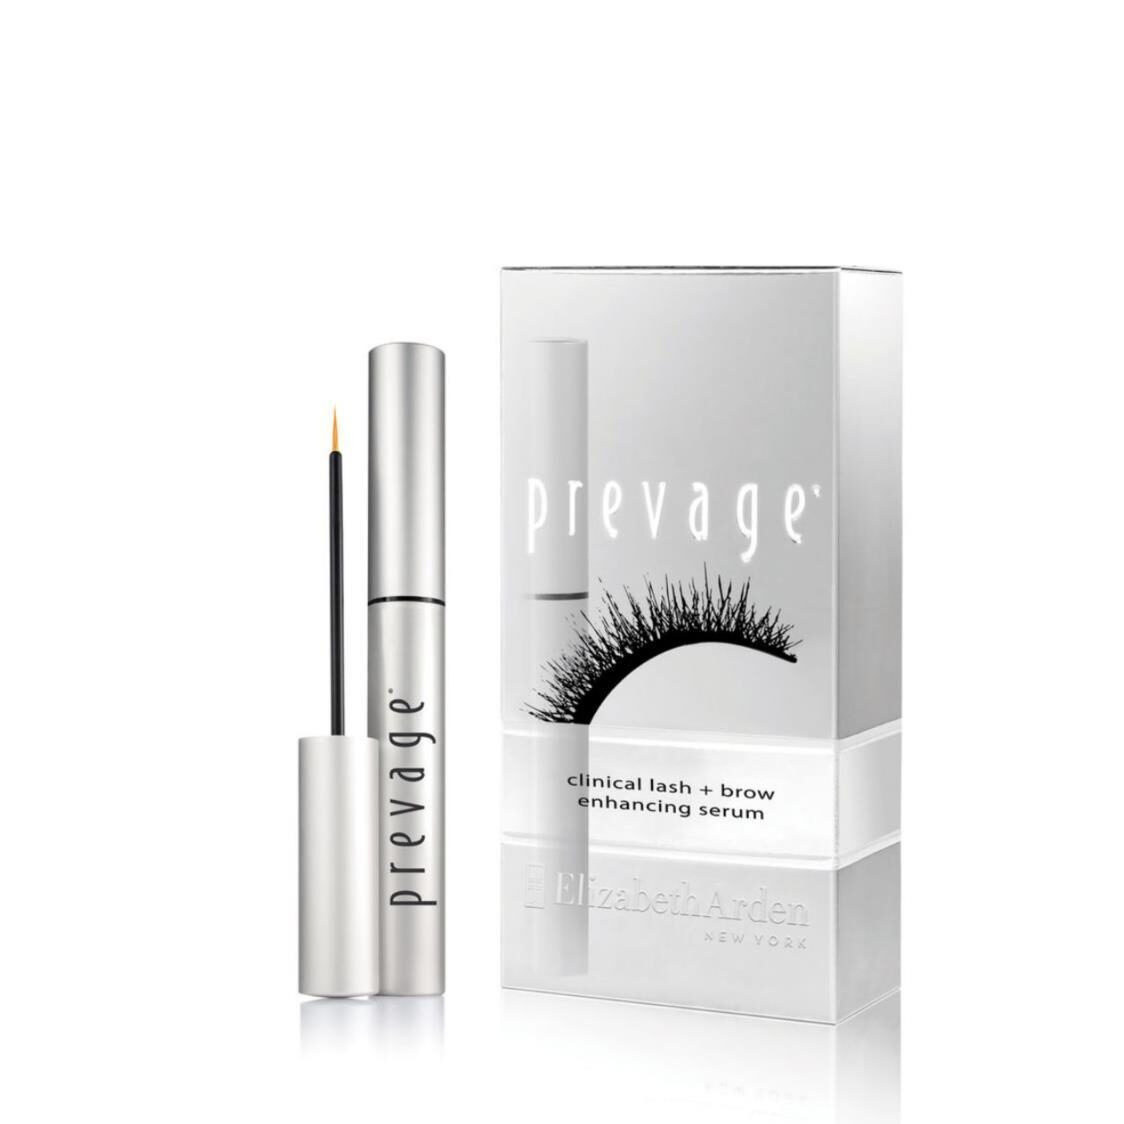 PREVAGE Anti-aging Clinical Lash and Brow Enhancing Serum 013